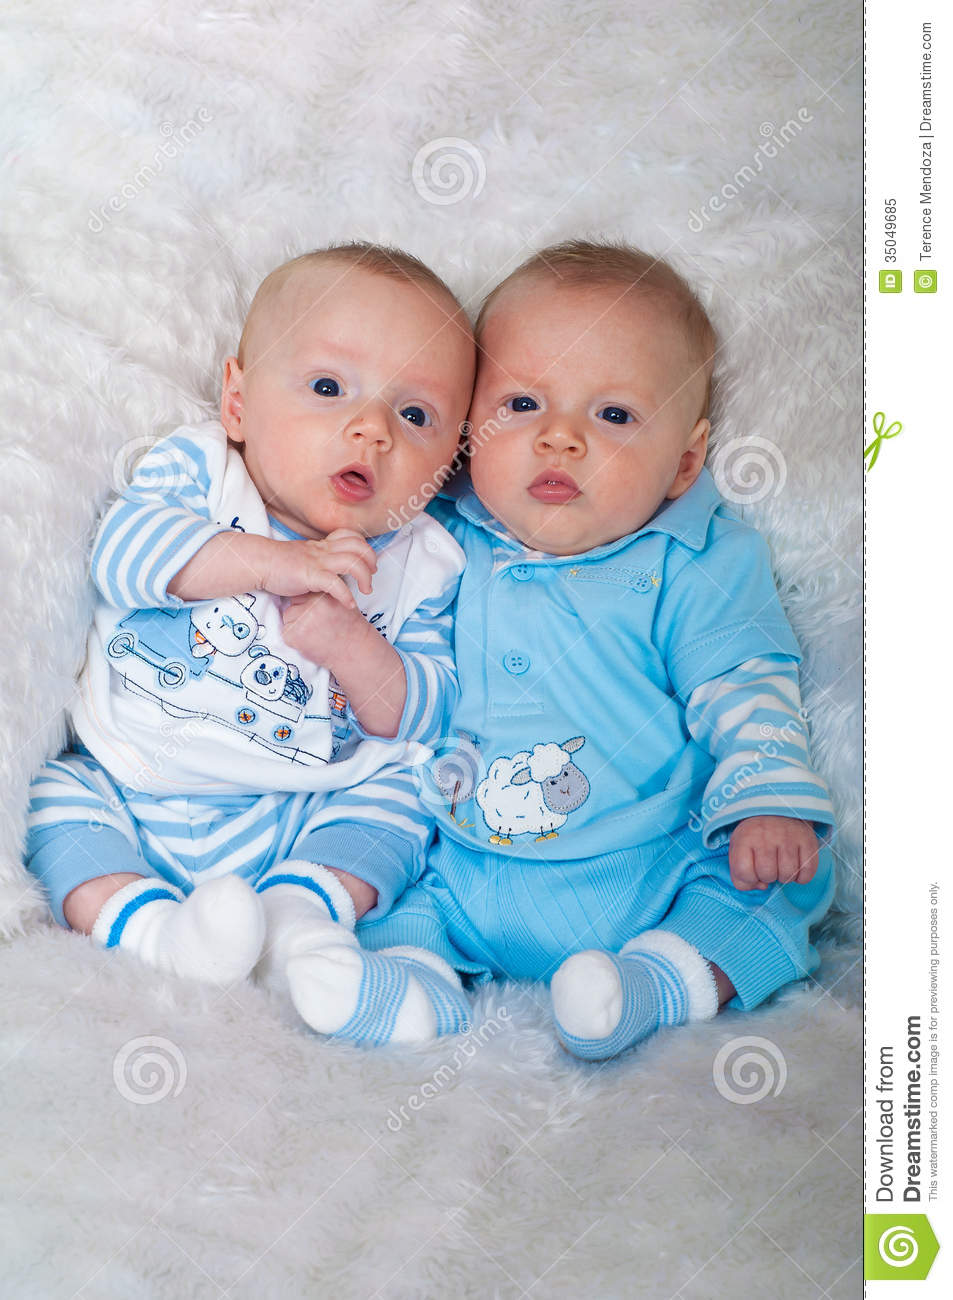 Cute Baby Boys Laying On Blanket Stock Image - Image of infant ...